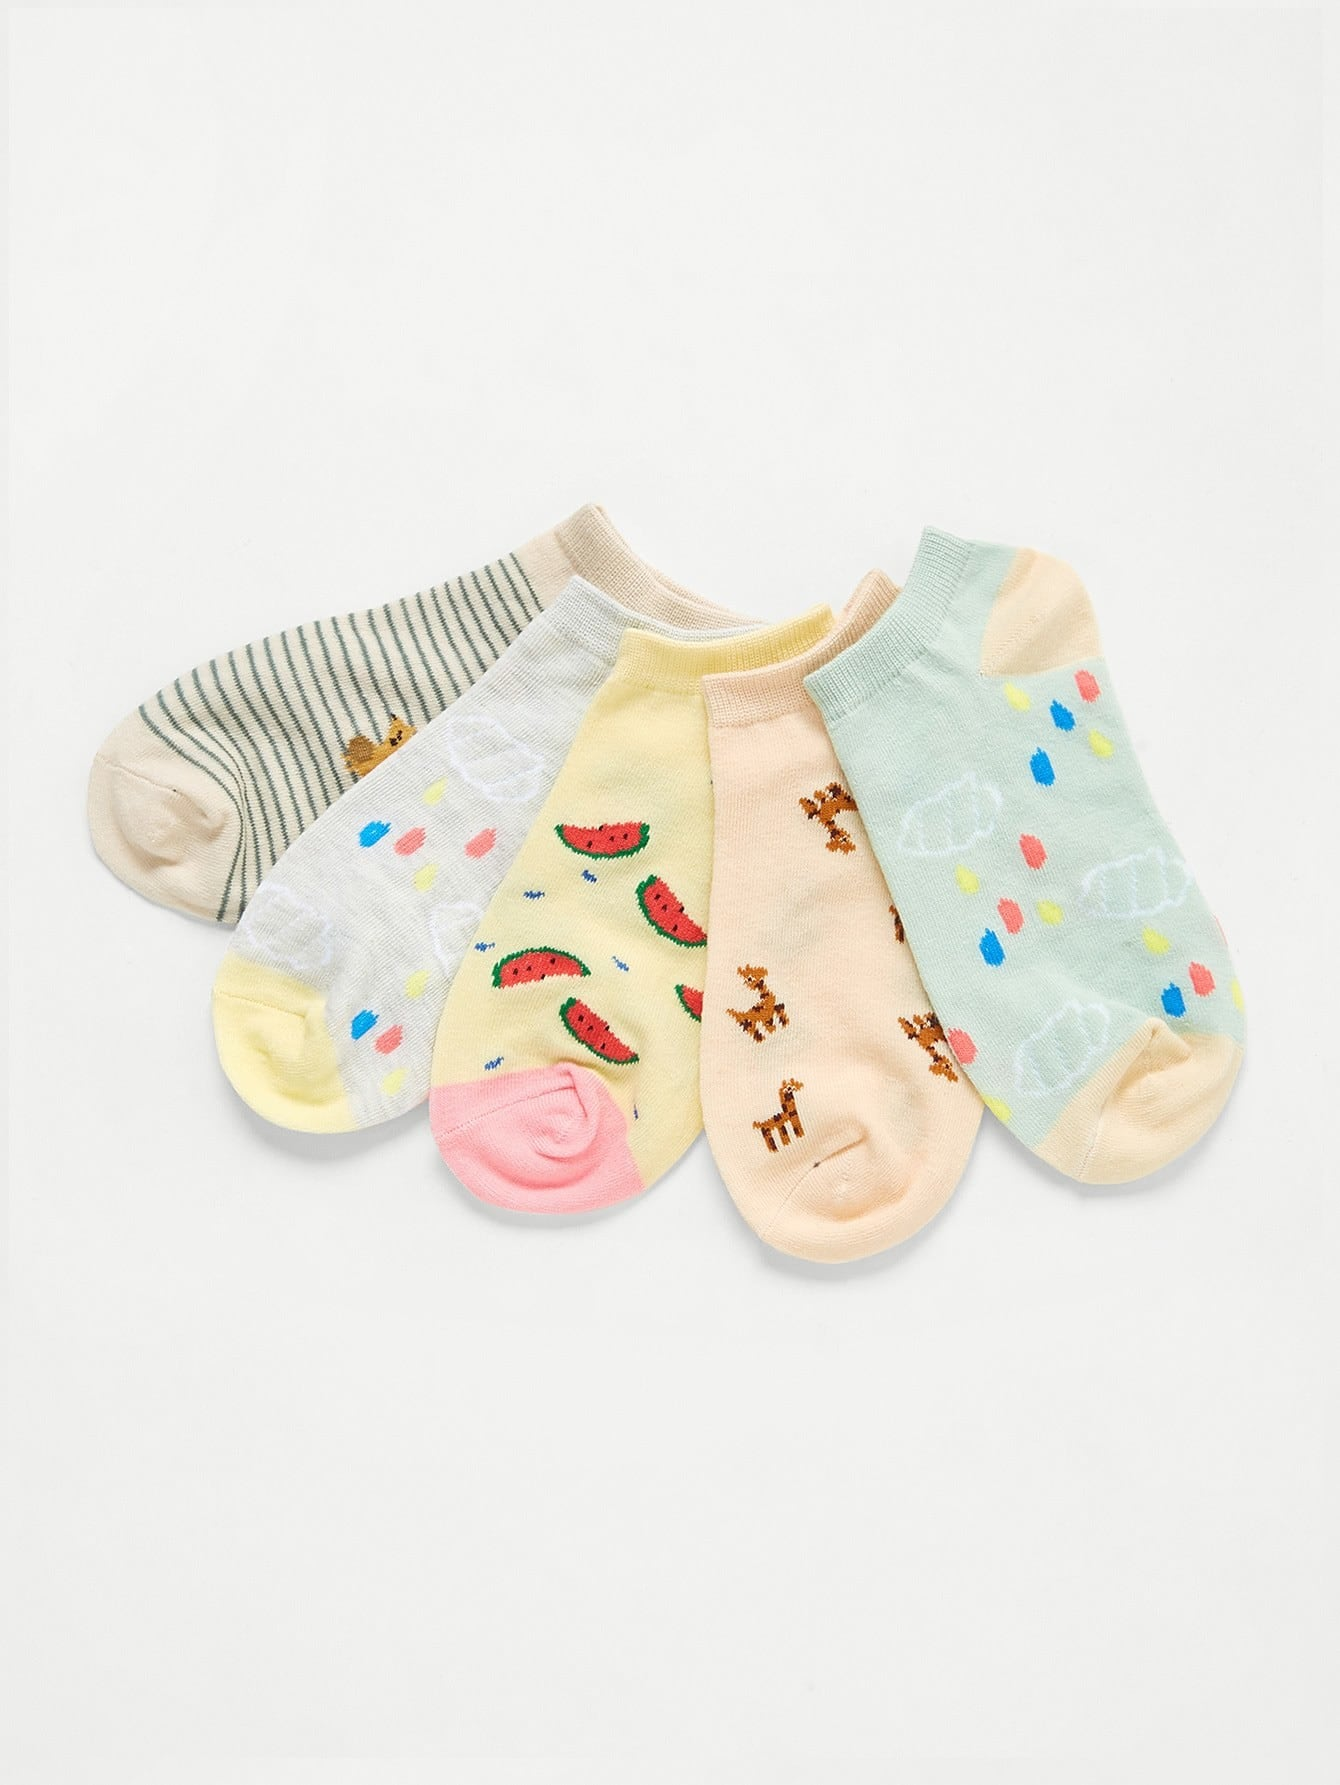 Cartoon Pattern Ankle Socks 5pairs letters pattern kintting ankle socks